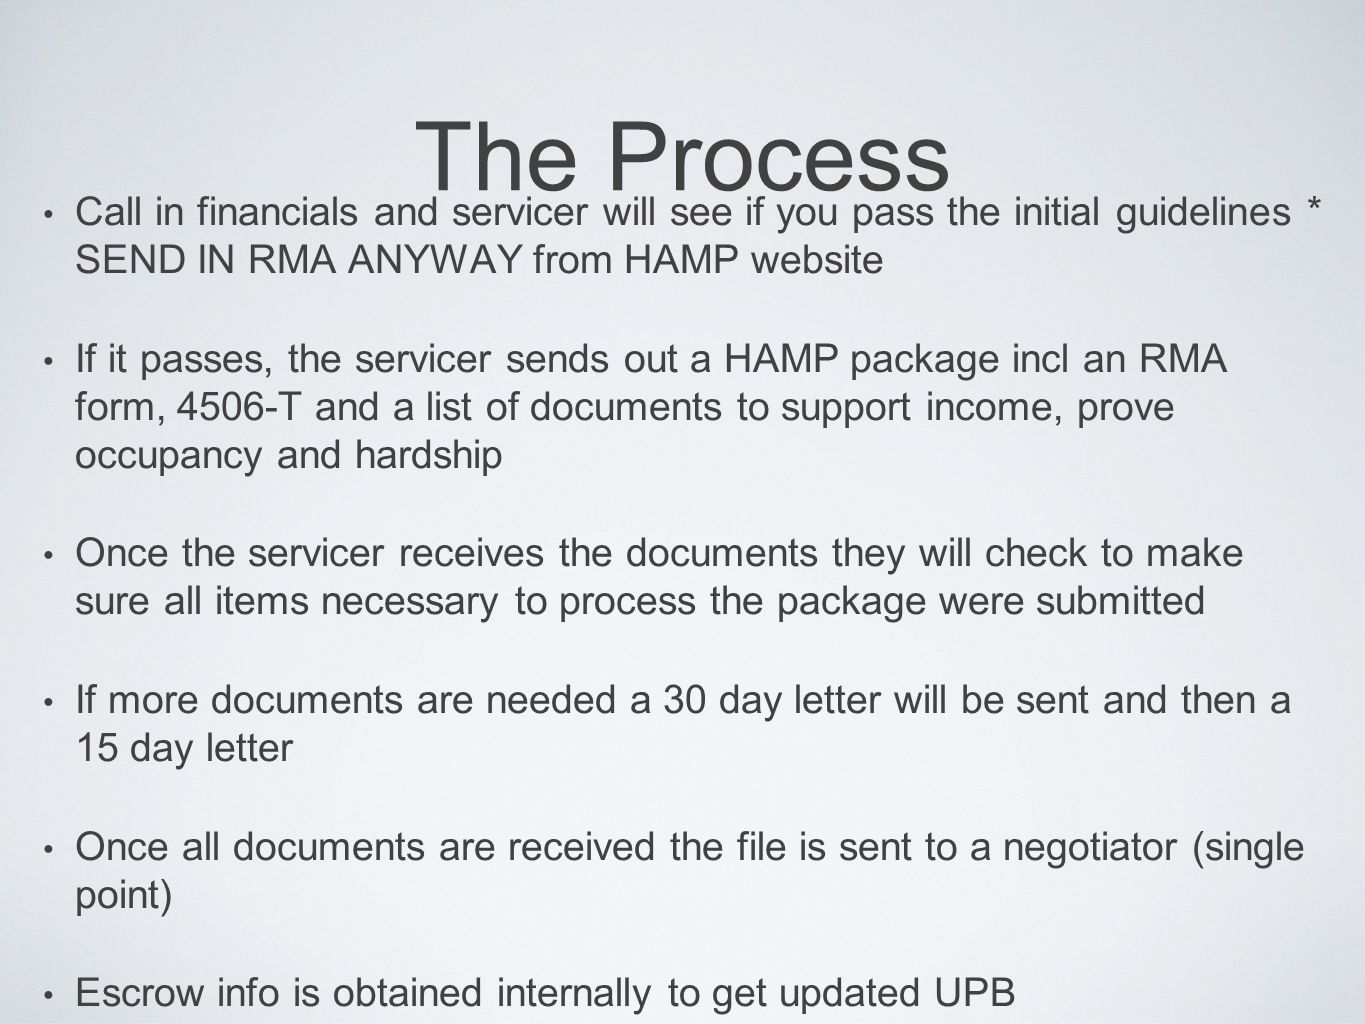 The Process Call in financials and servicer will see if you pass the initial guidelines * SEND IN RMA ANYWAY from HAMP website If it passes, the servicer sends out a HAMP package incl an RMA form, 4506-T and a list of documents to support income, prove occupancy and hardship Once the servicer receives the documents they will check to make sure all items necessary to process the package were submitted If more documents are needed a 30 day letter will be sent and then a 15 day letter Once all documents are received the file is sent to a negotiator (single point) Escrow info is obtained internally to get updated UPB